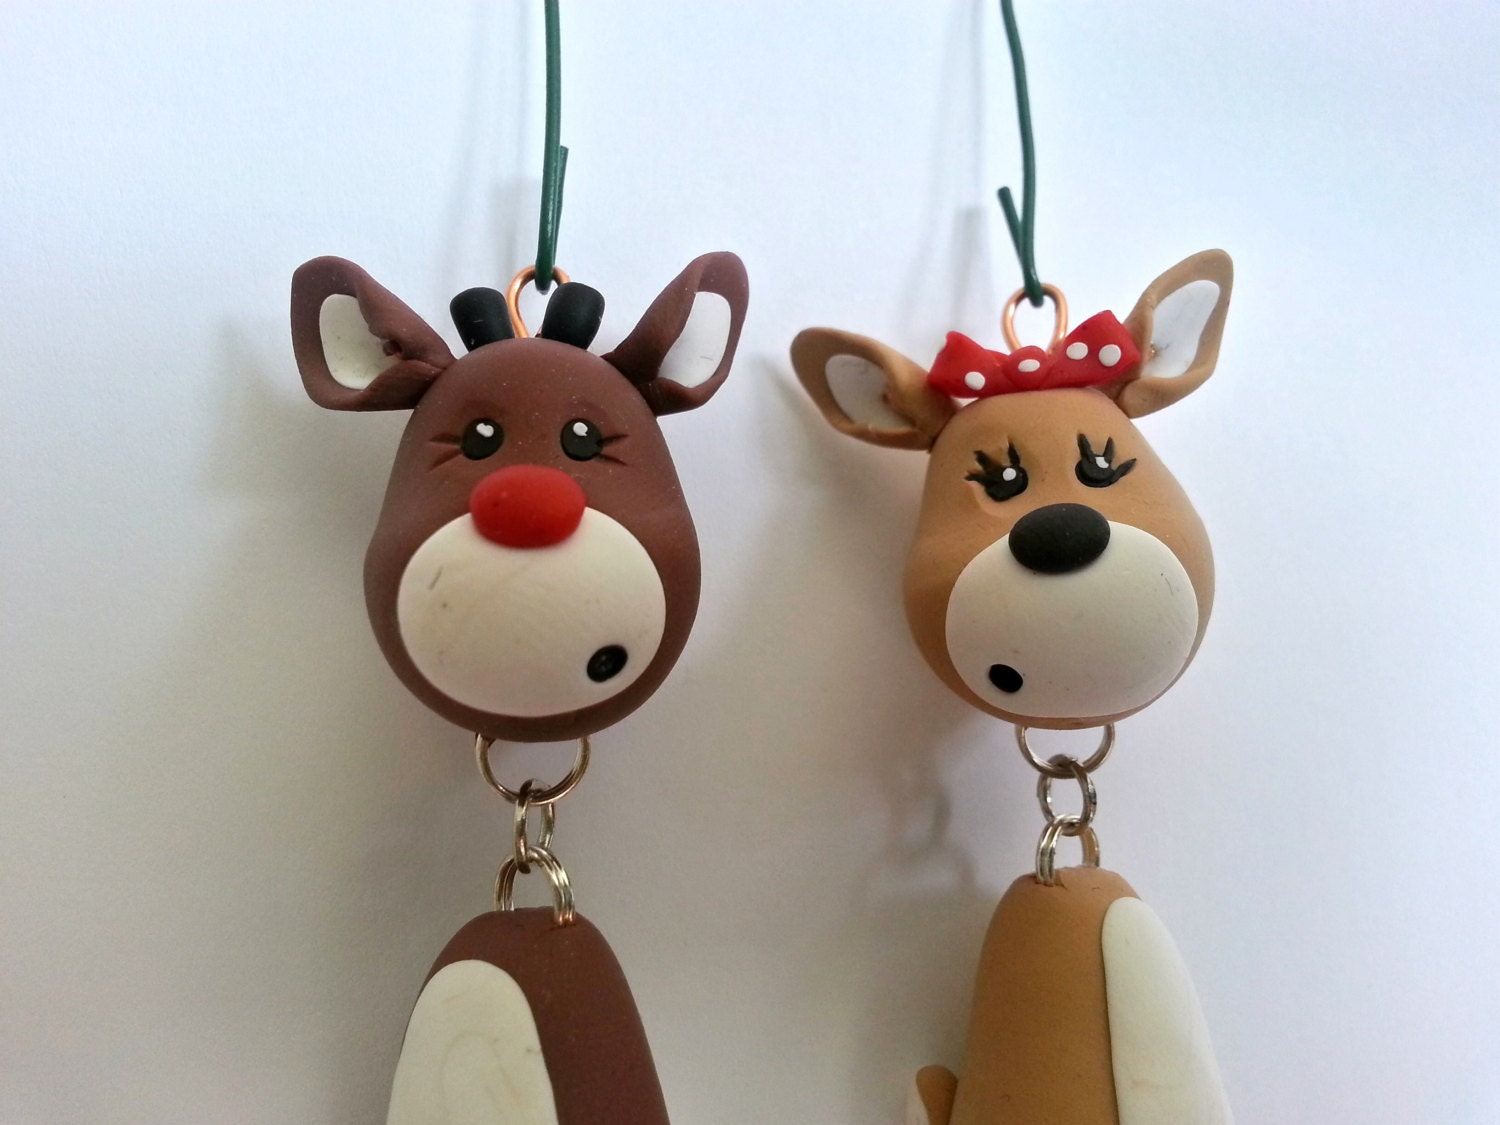 Reindeer Ornament Set Handmade Polymer Clay Ornaments Christmas Keepsakes Christmas Reindeer Figurines Stocking Stuffers Holiday Gifts